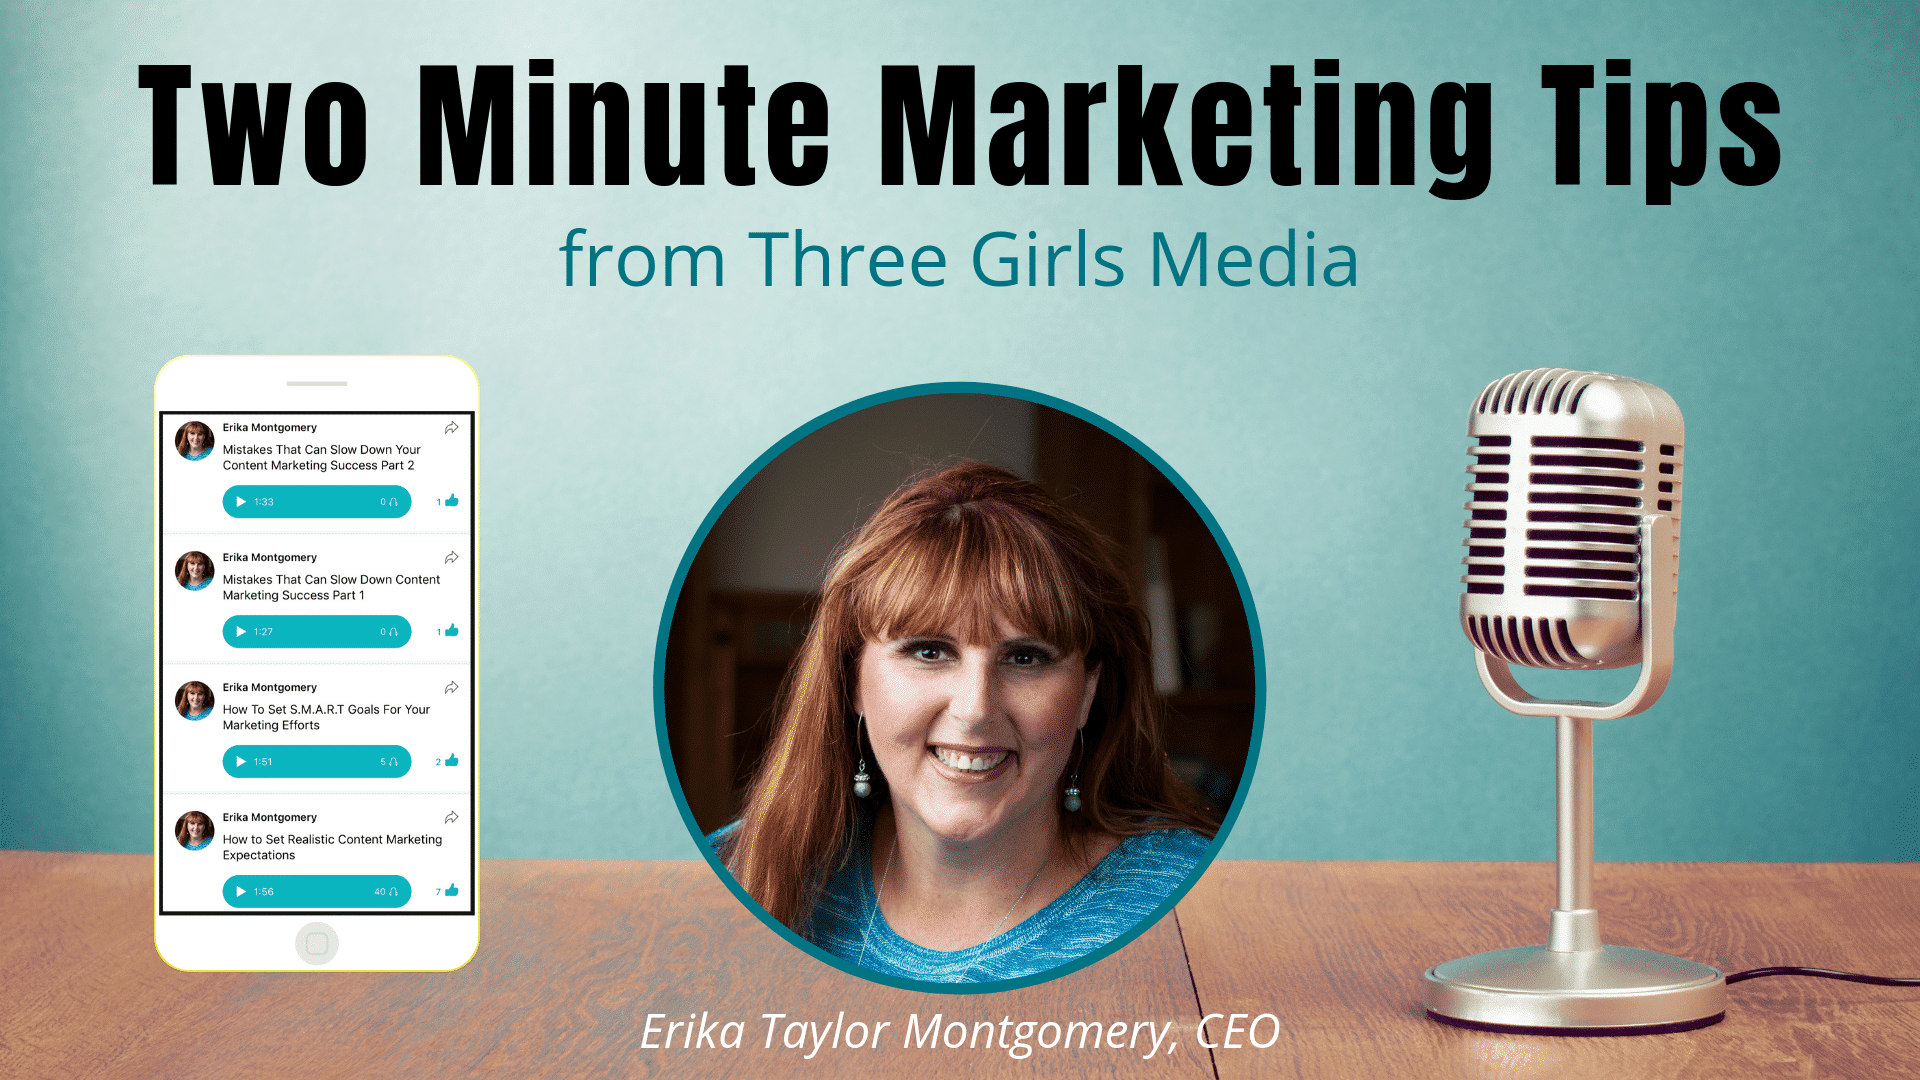 Two Minute Marketing Tips A Quick Guide to Snapchat, Twitter & LinkedIn Video Production